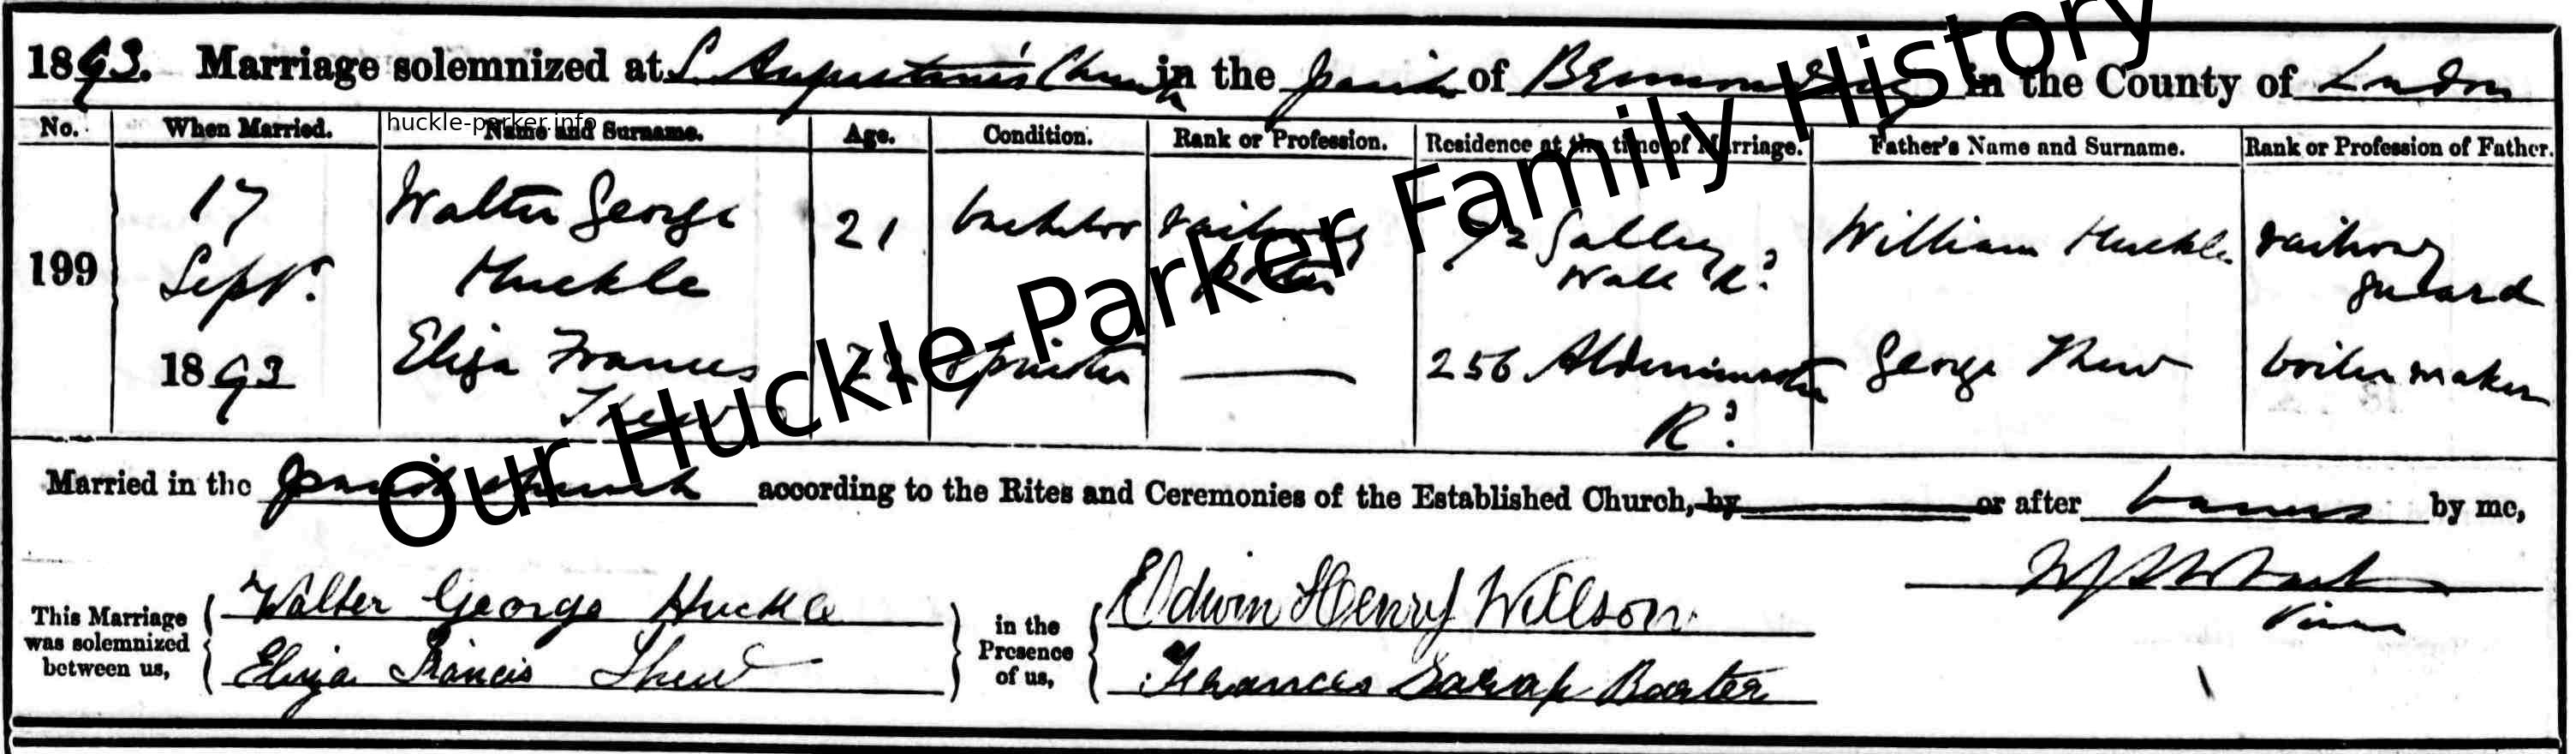 Original Marriage Entry